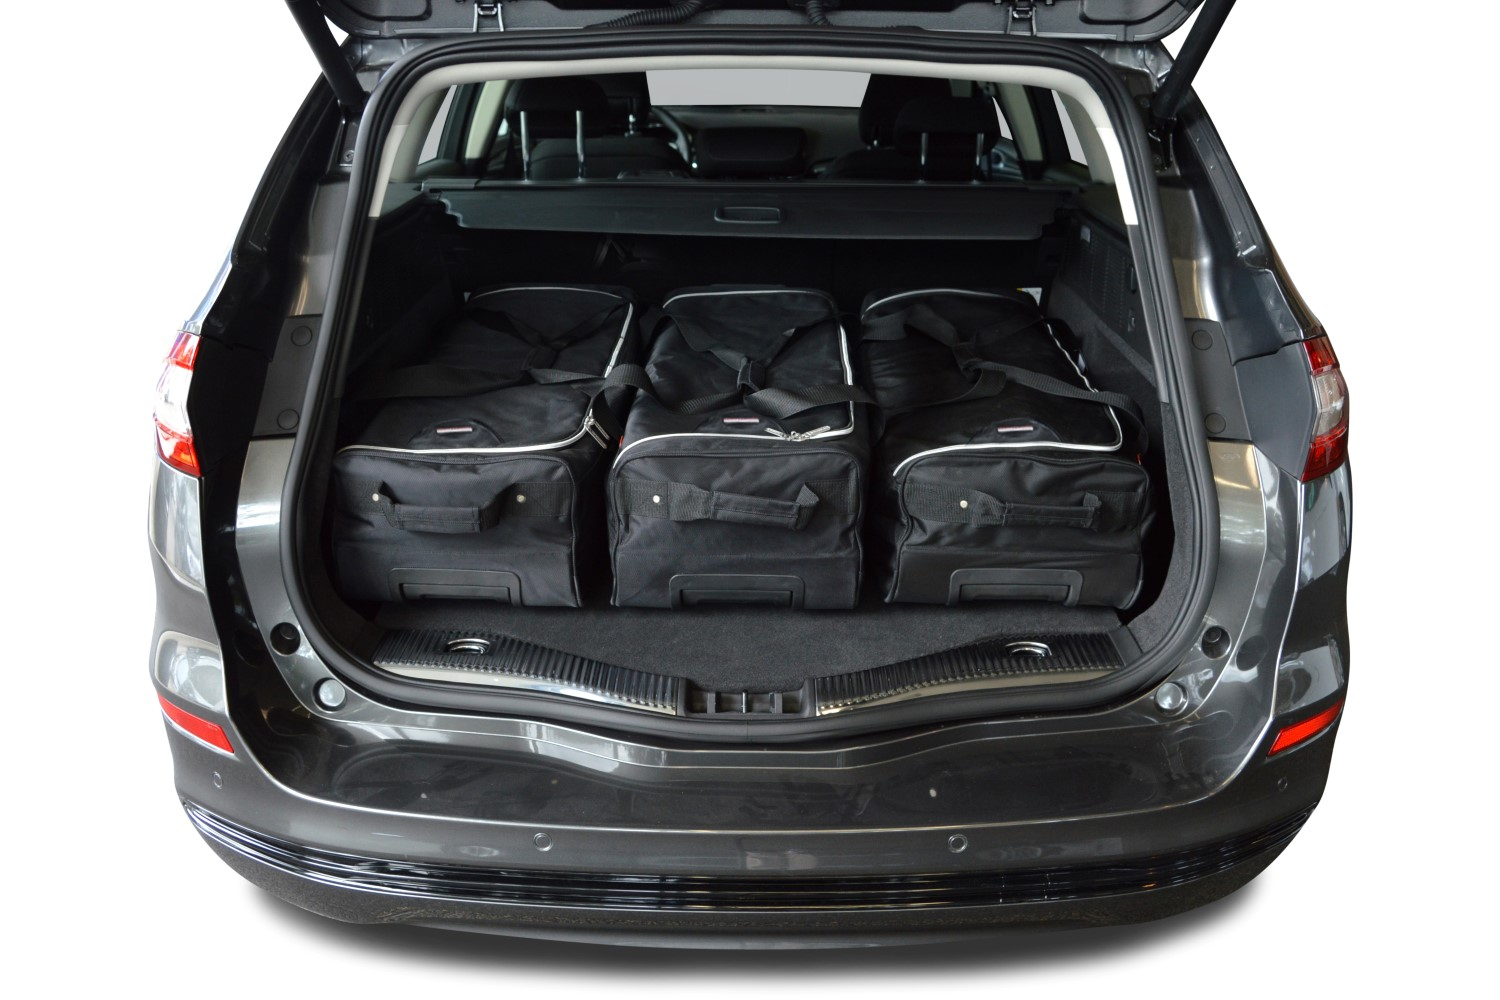 mondeo ford mondeo wagon 2014 present car bags travel bags. Black Bedroom Furniture Sets. Home Design Ideas